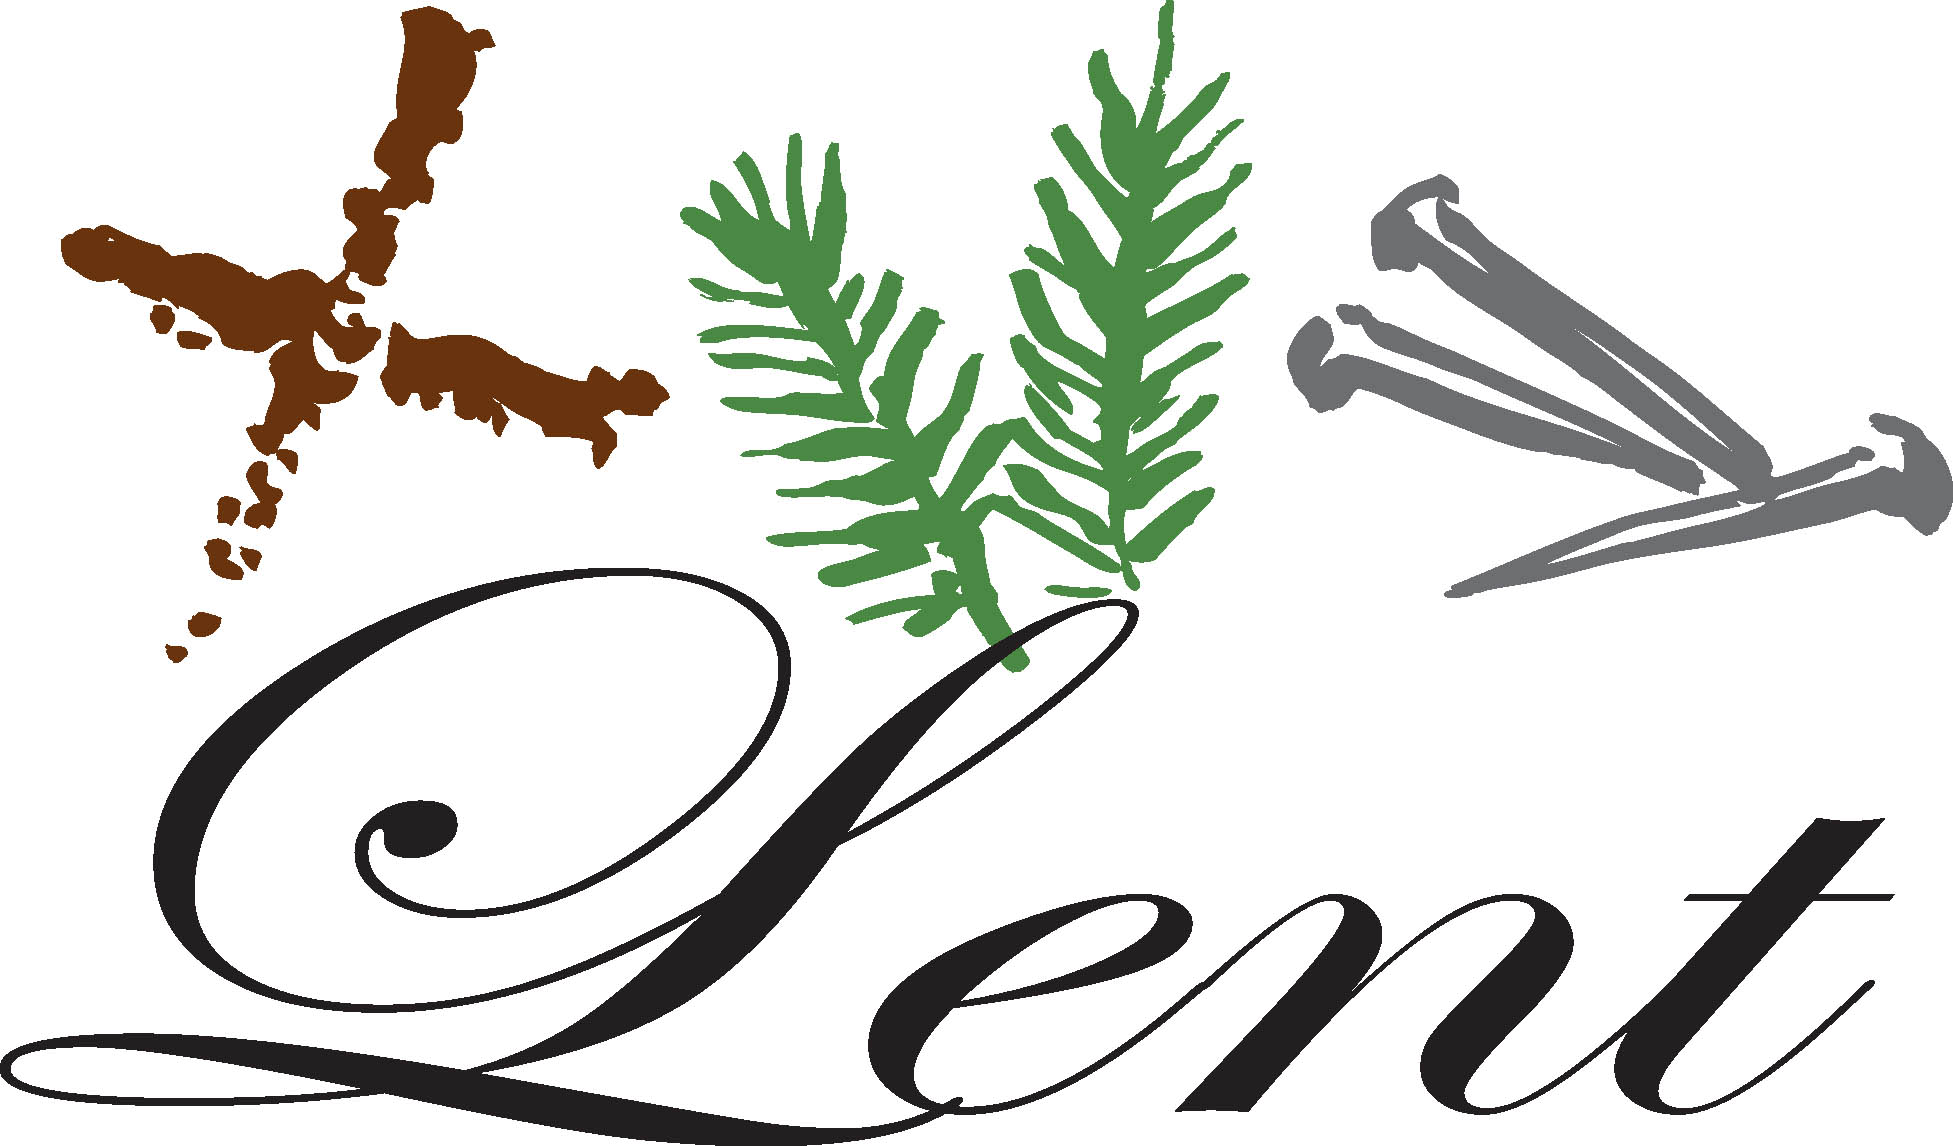 Free Lent Cliparts, Download Free Clip Art, Free Clip Art on.